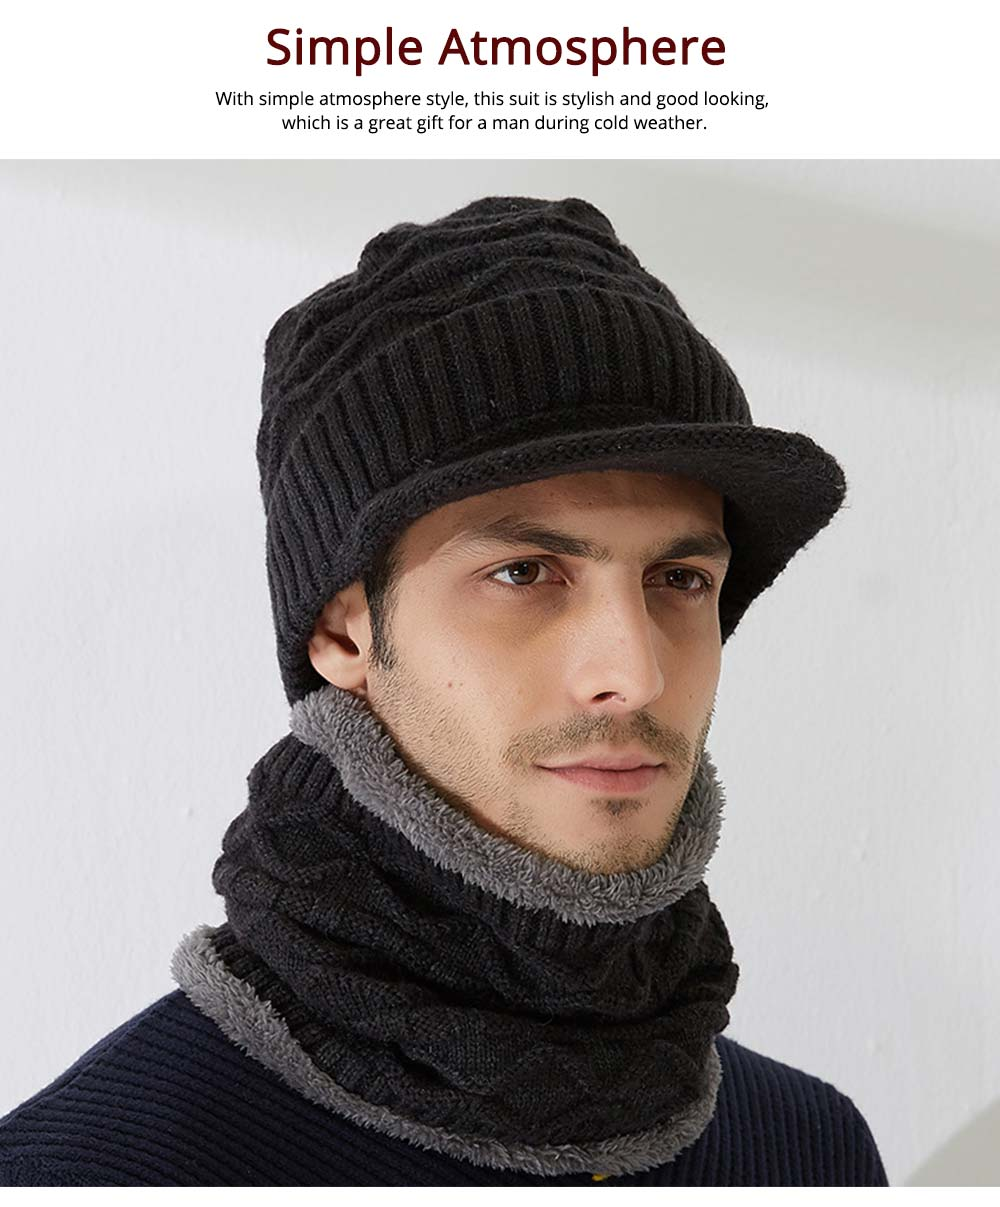 Cold Autumn Winter Men Outdoor Scarf Cap Suit, Comfortable Soft Wool Blend Knitted Face Neck Warmer Cravat 5